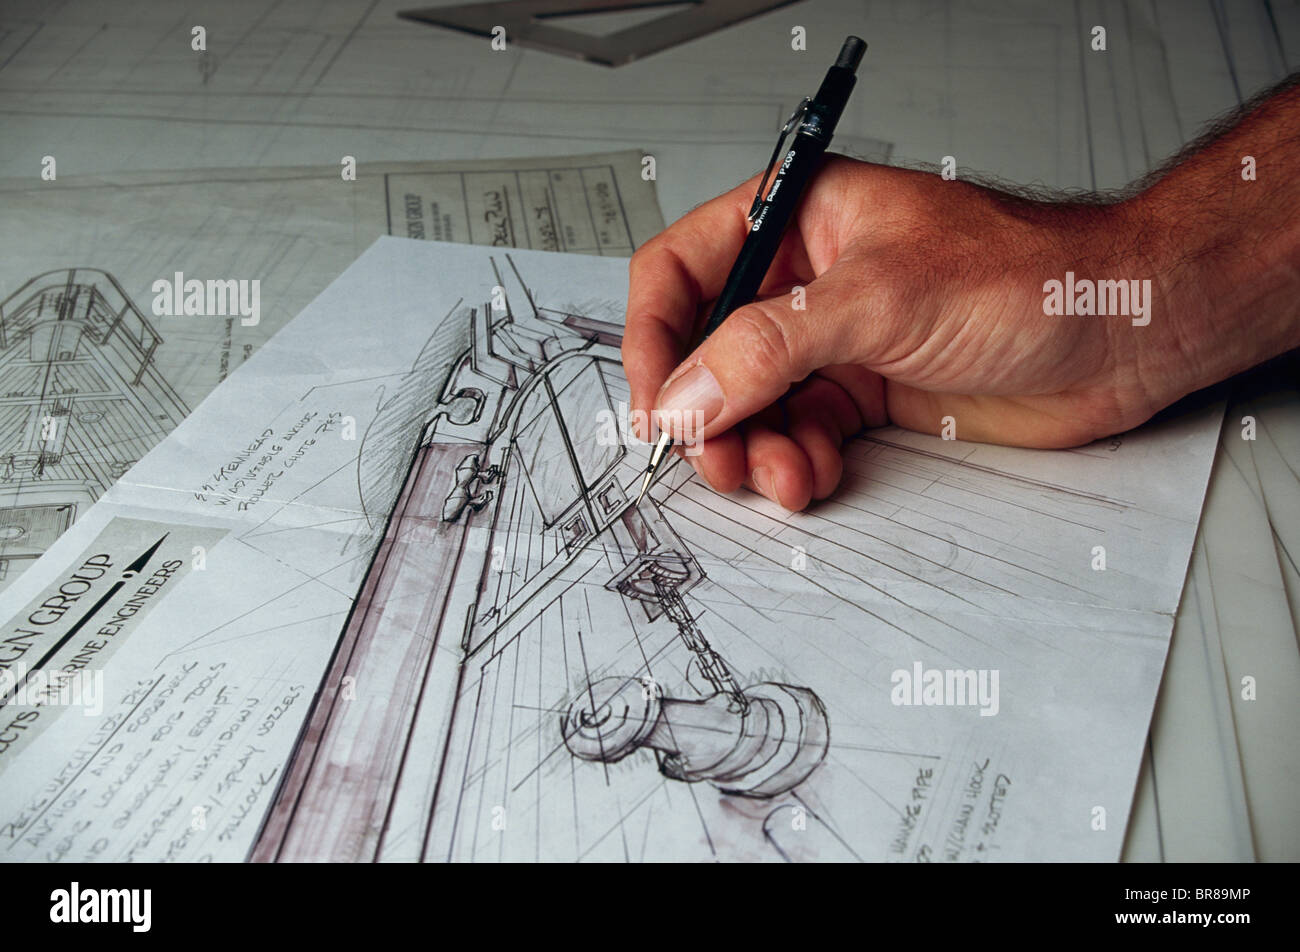 Art Line Yacht Design : Yacht design pencil sketches on the drawing table stock